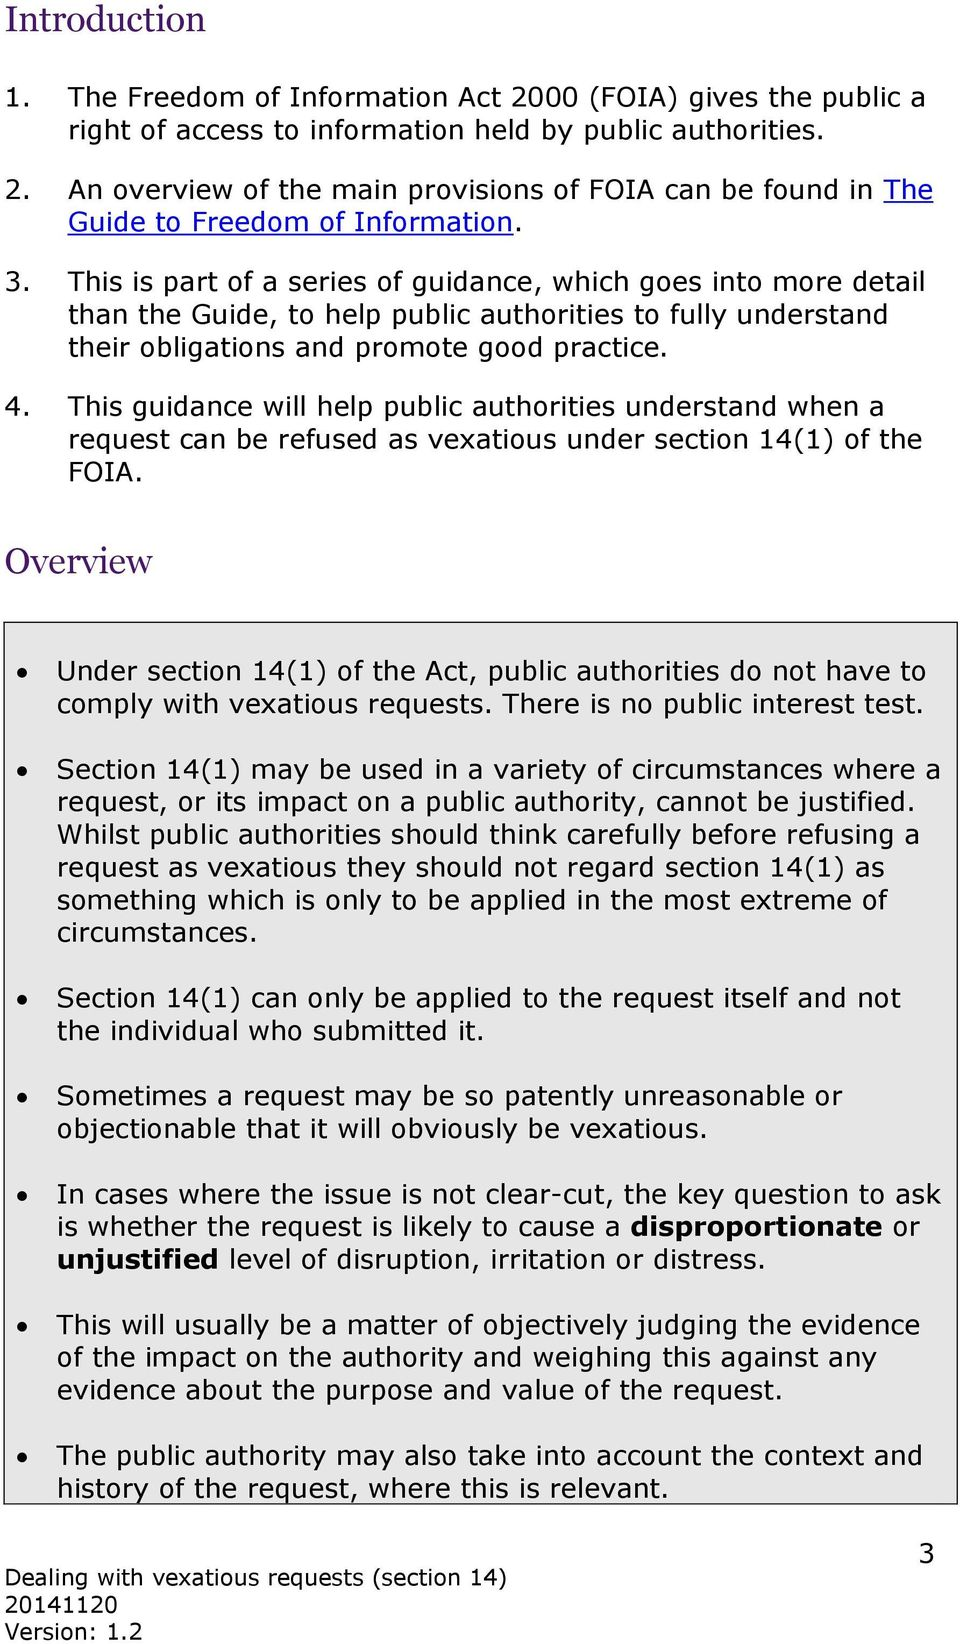 This guidance will help public authorities understand when a request can be refused as vexatious under section 14(1) of the FOIA.